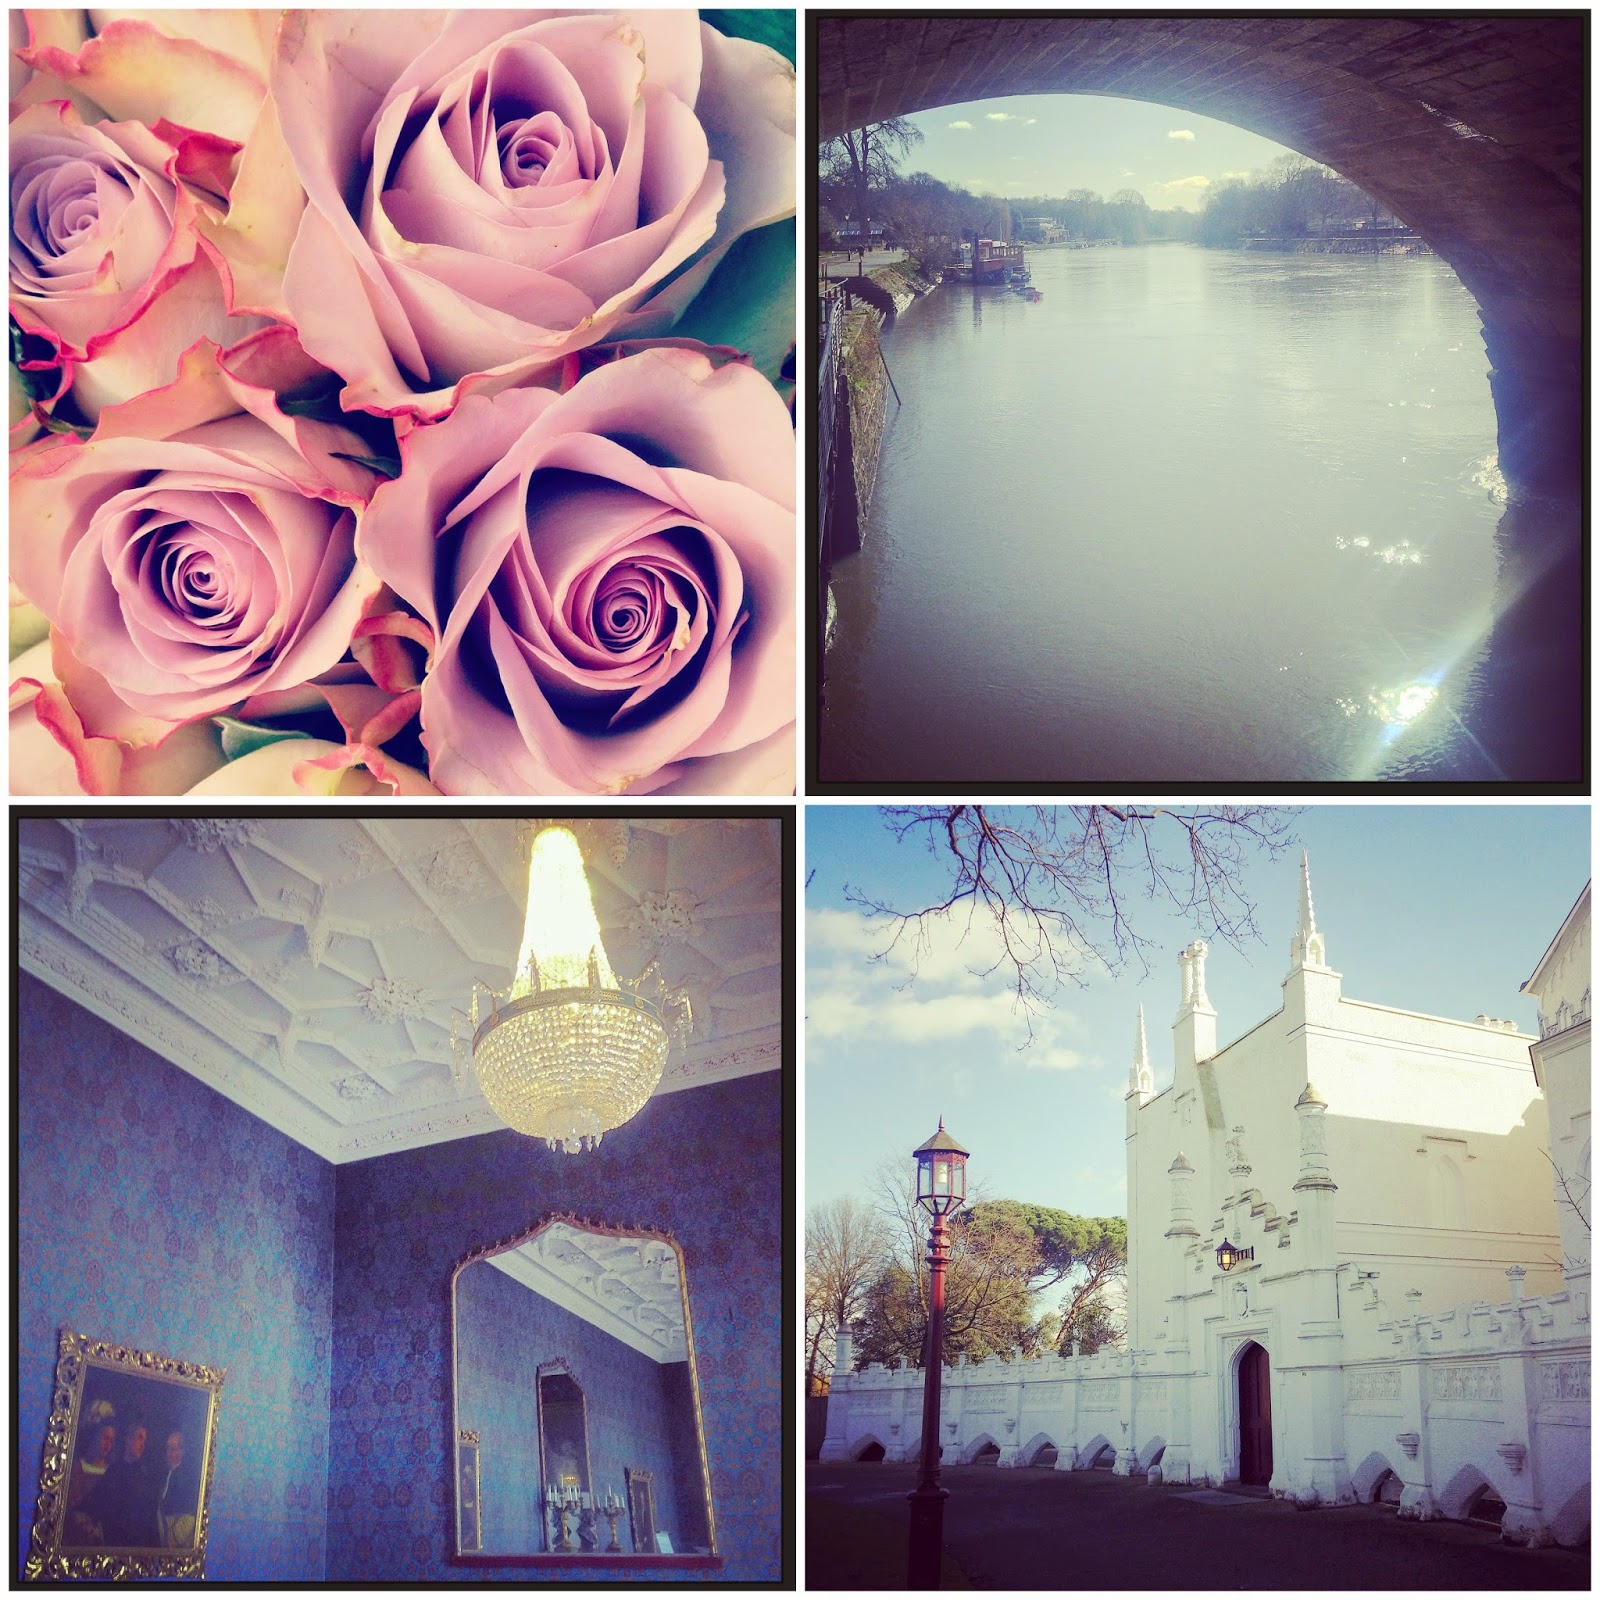 roses, the thames, strawberry house & st. mary's university